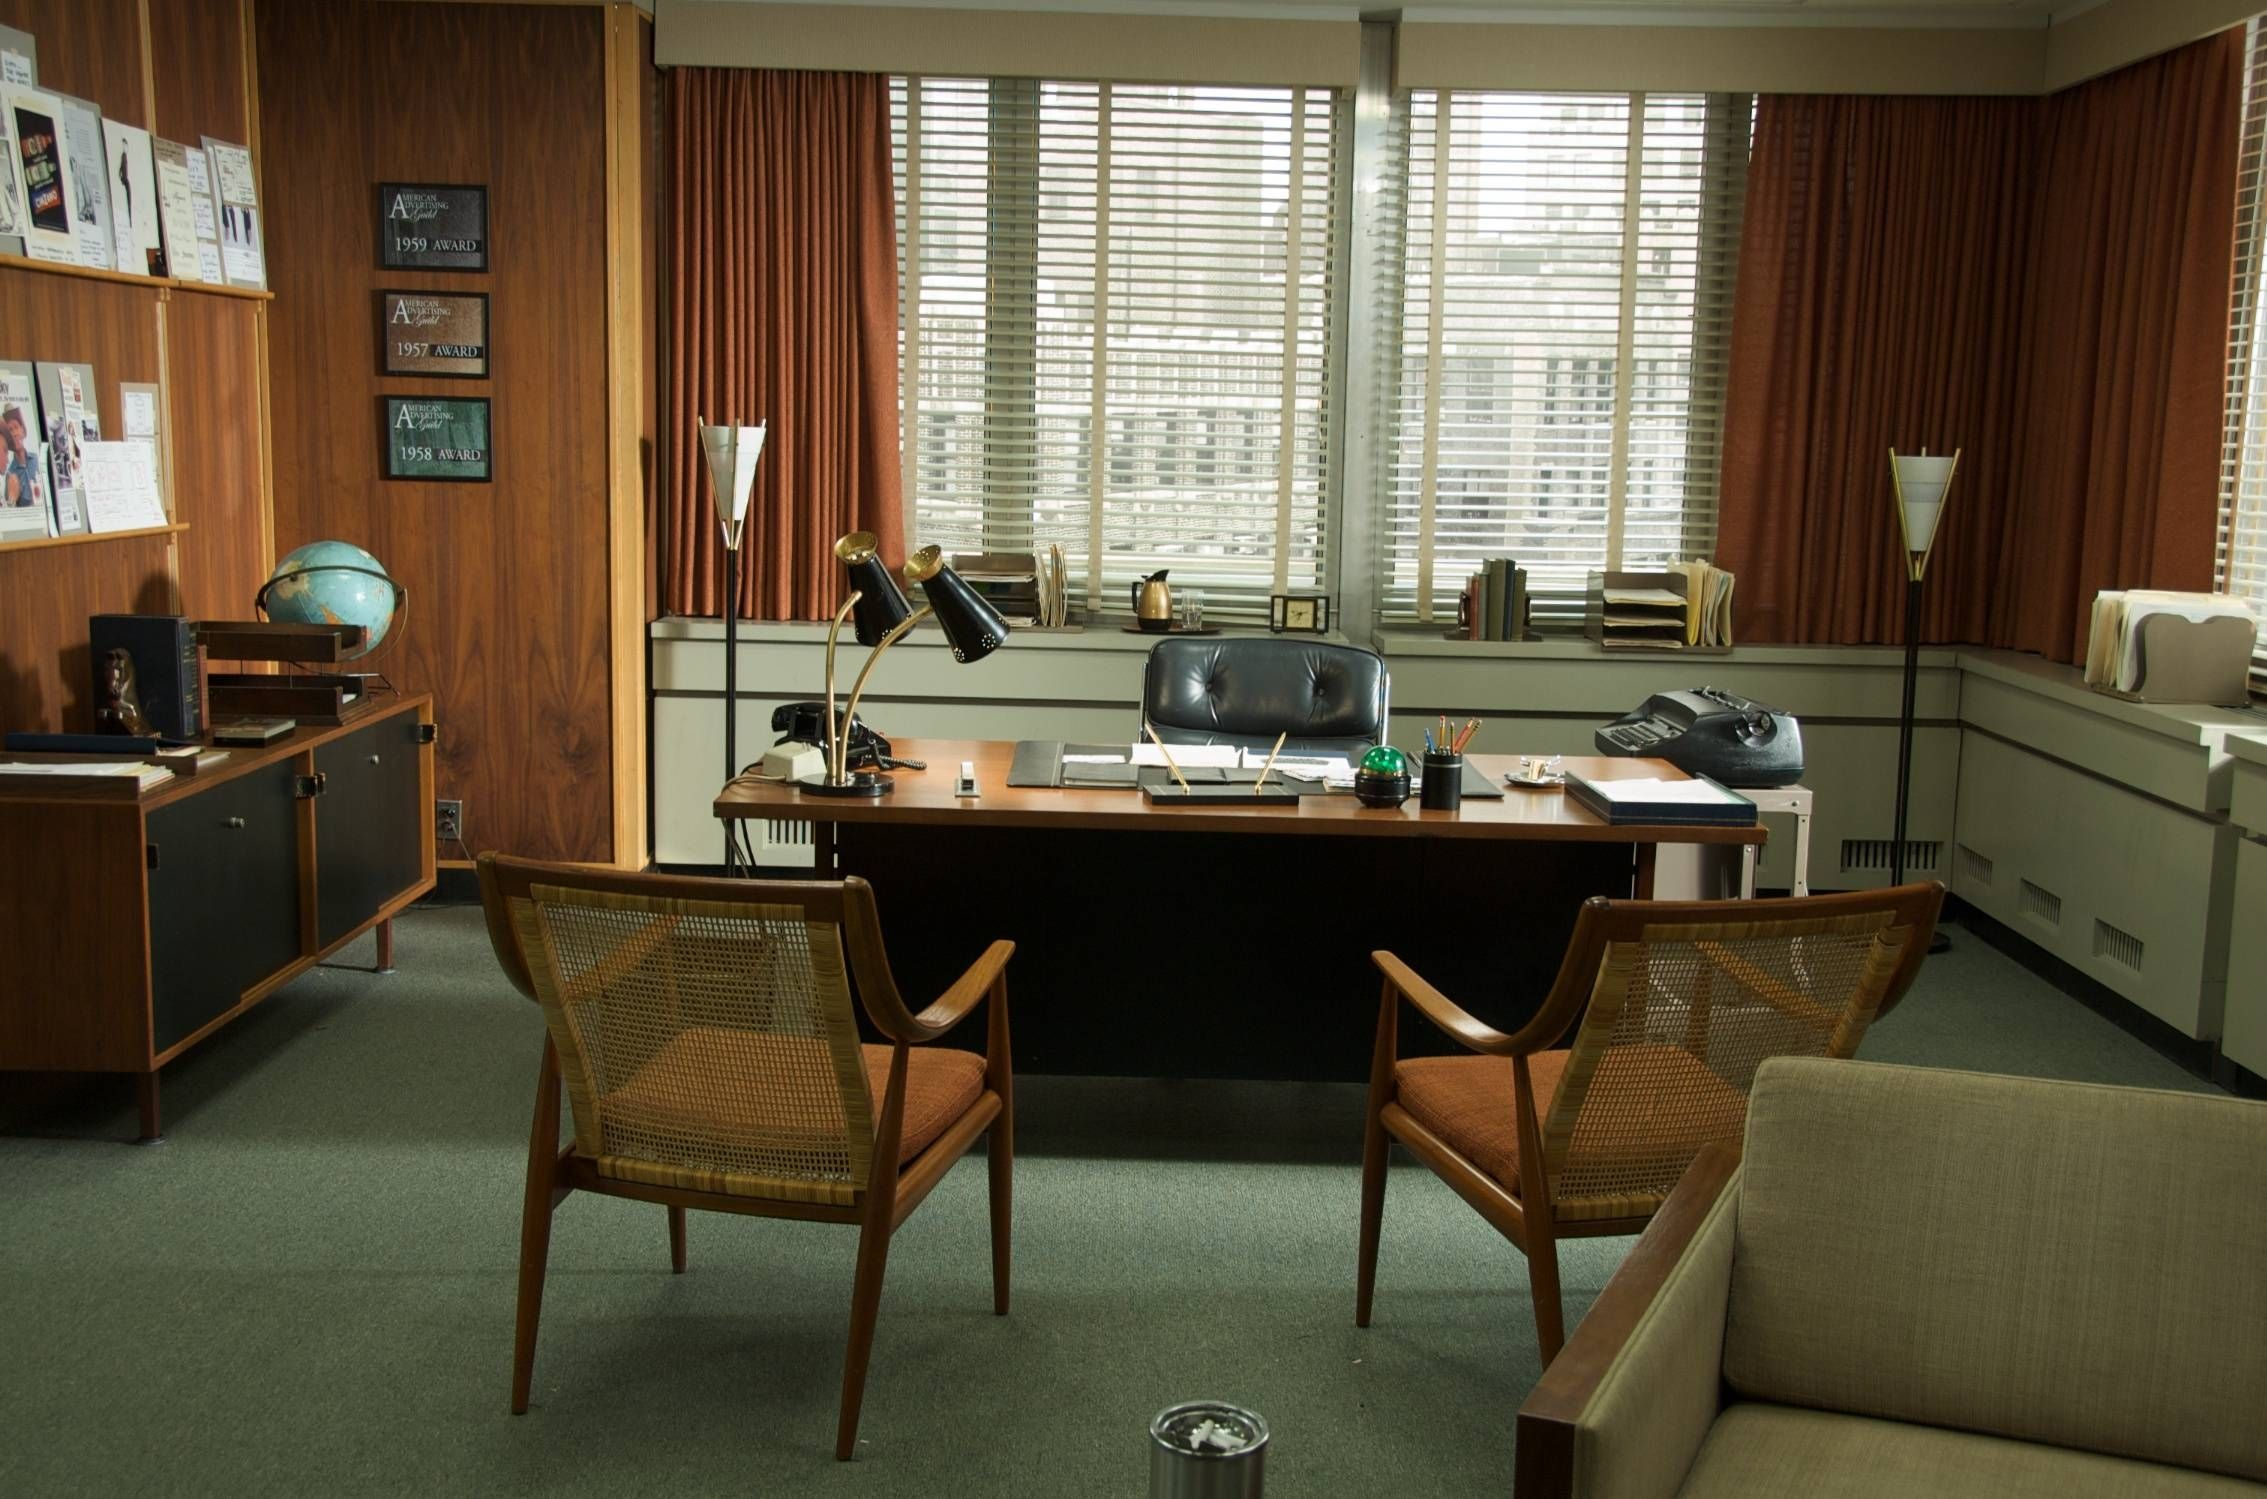 Achieving A Mad Men Theme In Your Home Mad Men Interior Design Mad Men Furniture Mad Men Decor